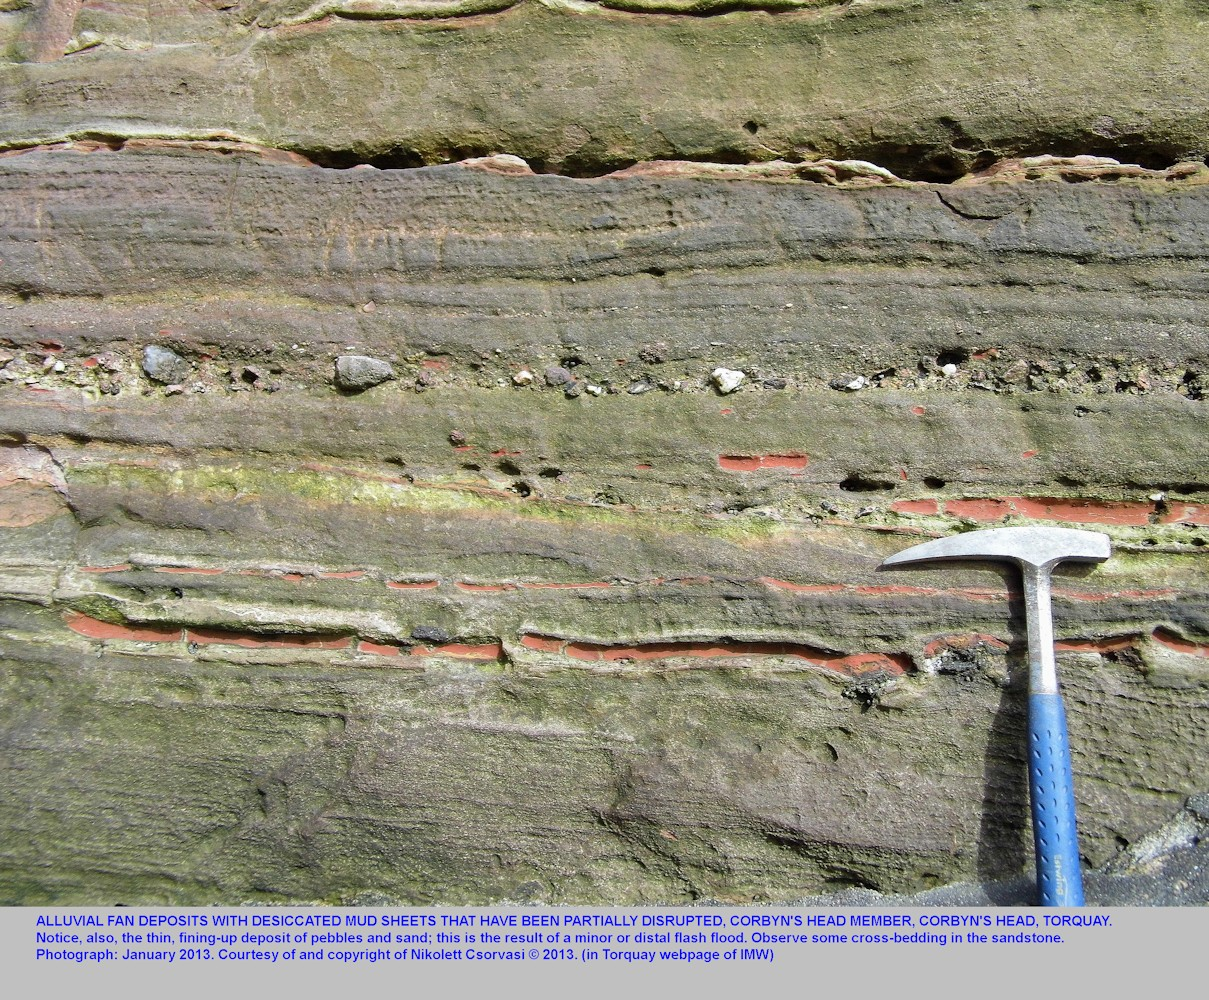 Details of Permian alluvial fan sediments at Corbyn's Head, Torquay, Devon, as photographed by Nikolett Csorvasi, January 2013